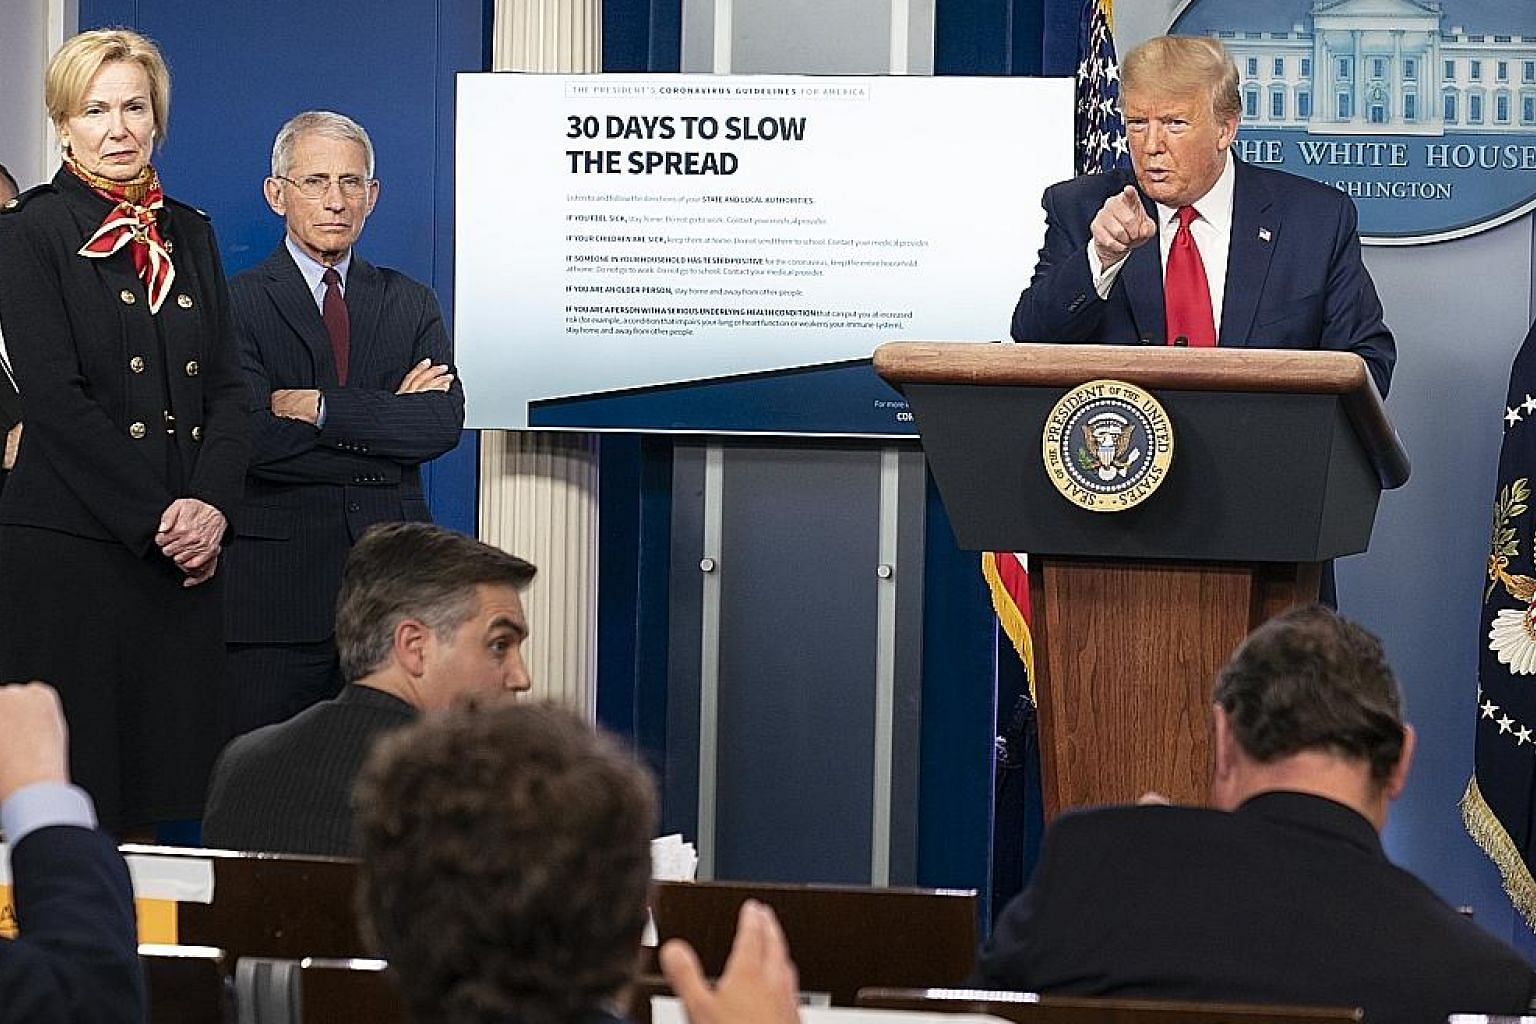 US President Donald Trump at a coronavirus task force news conference at the White House in Washington on Tuesday. Science scepticism has turned the US into fertile ground for the rapid spread of Covid-19, says the writer.